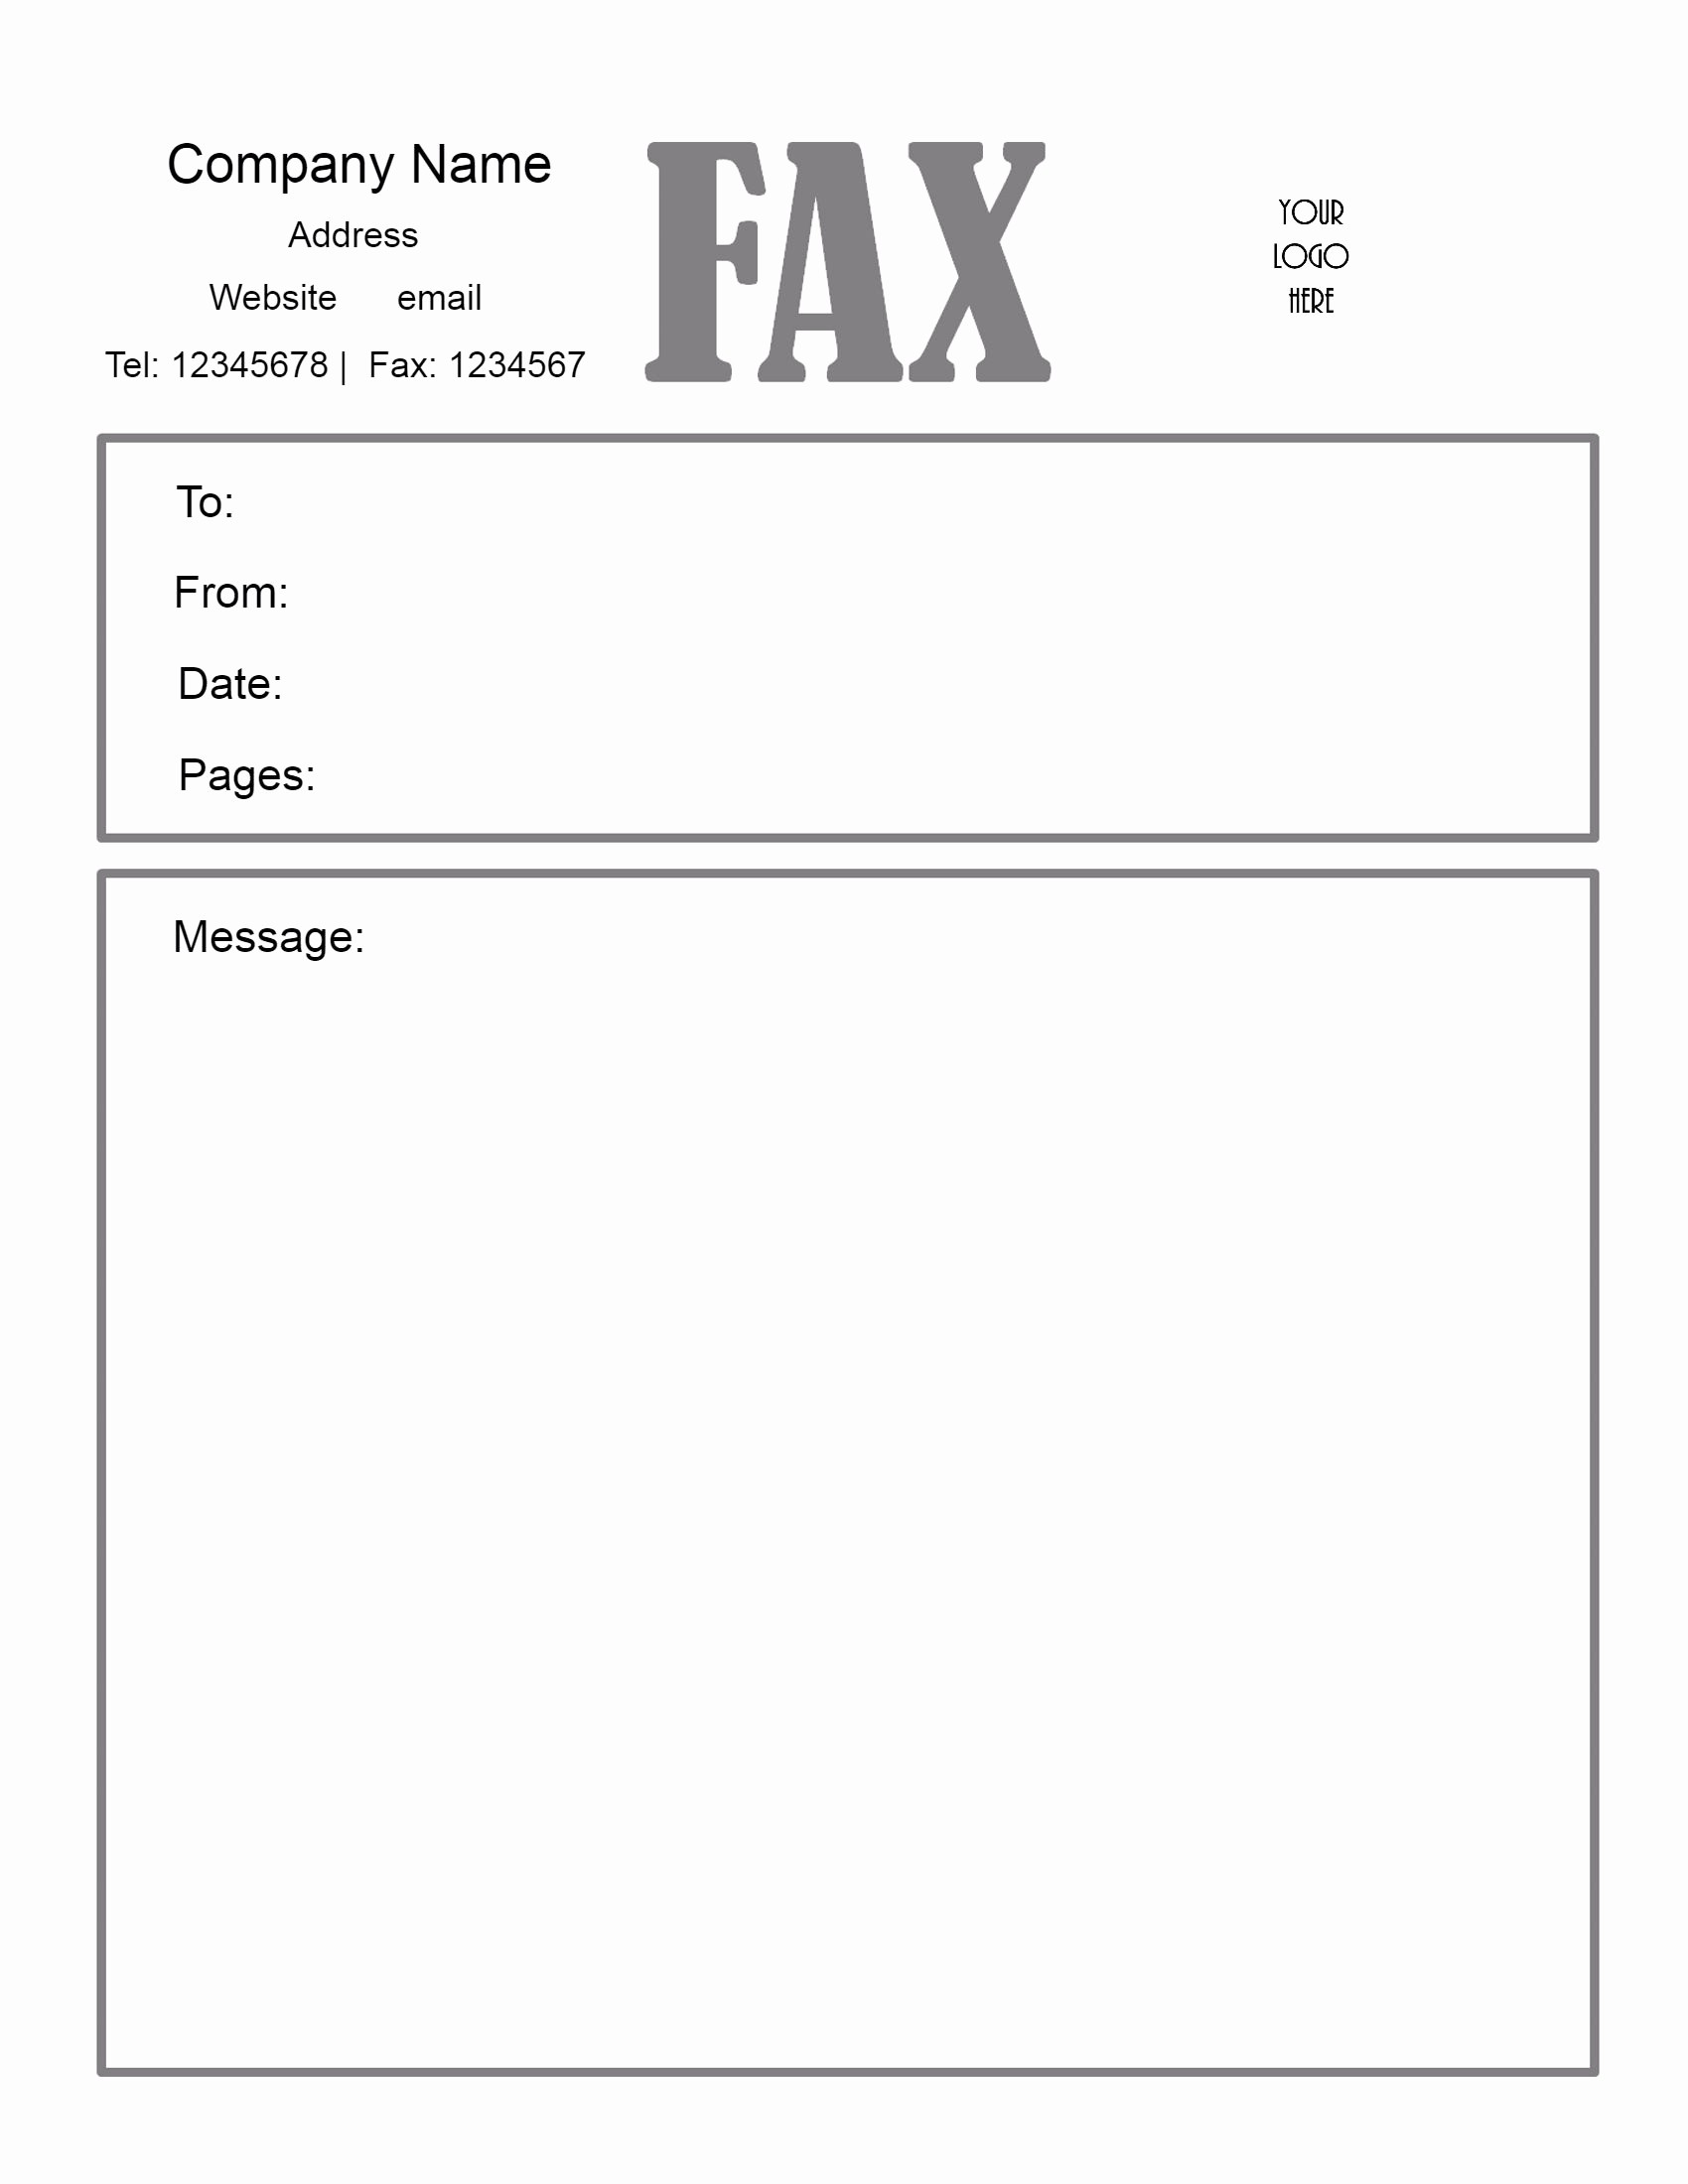 Cover Page for A Fax New Free Fax Cover Sheet Template